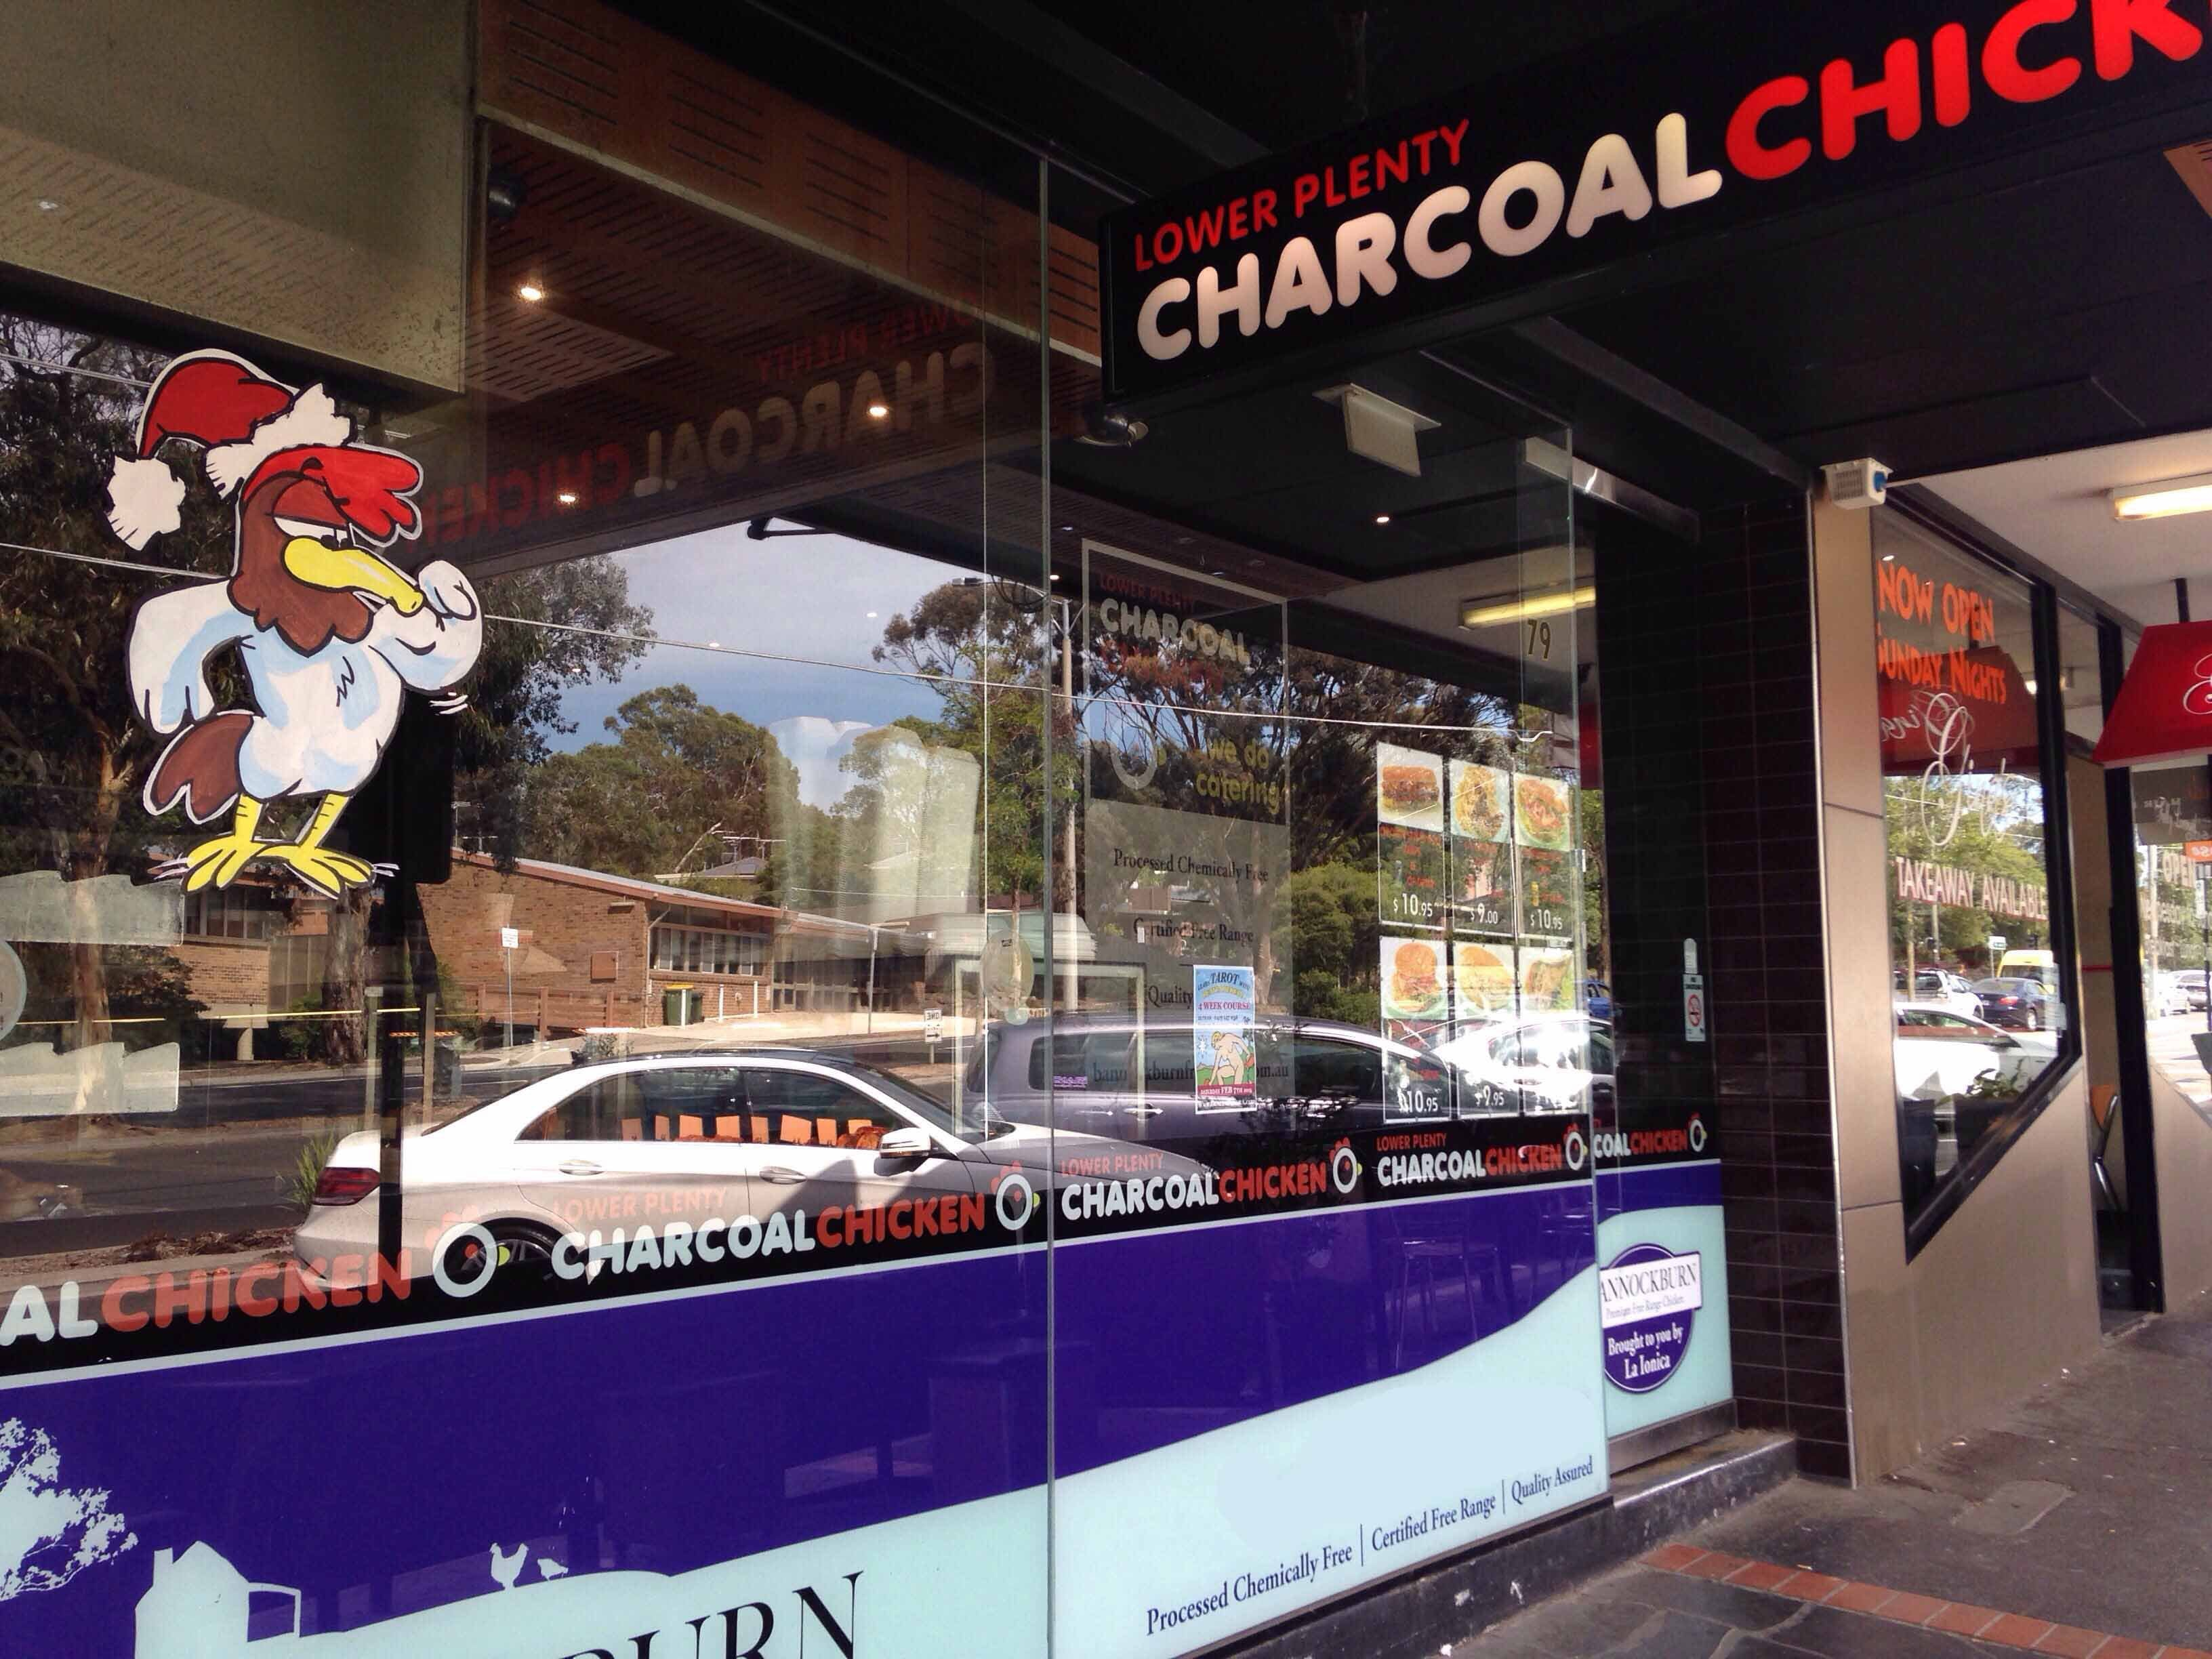 Lower Plenty Charcoal Chicken - Sydney Tourism